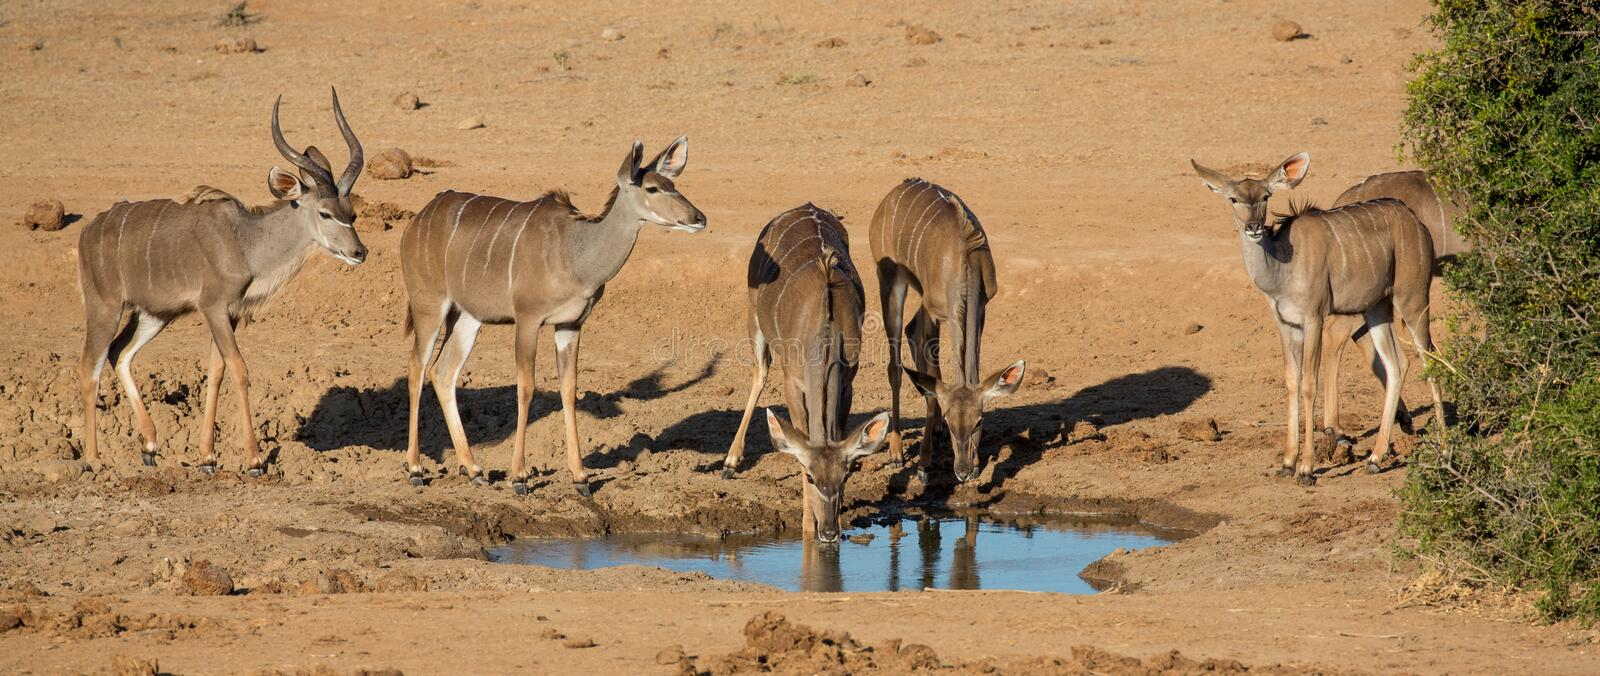 Impala Antelope Quenching Thirst at a Water Hole royalty free stock photos